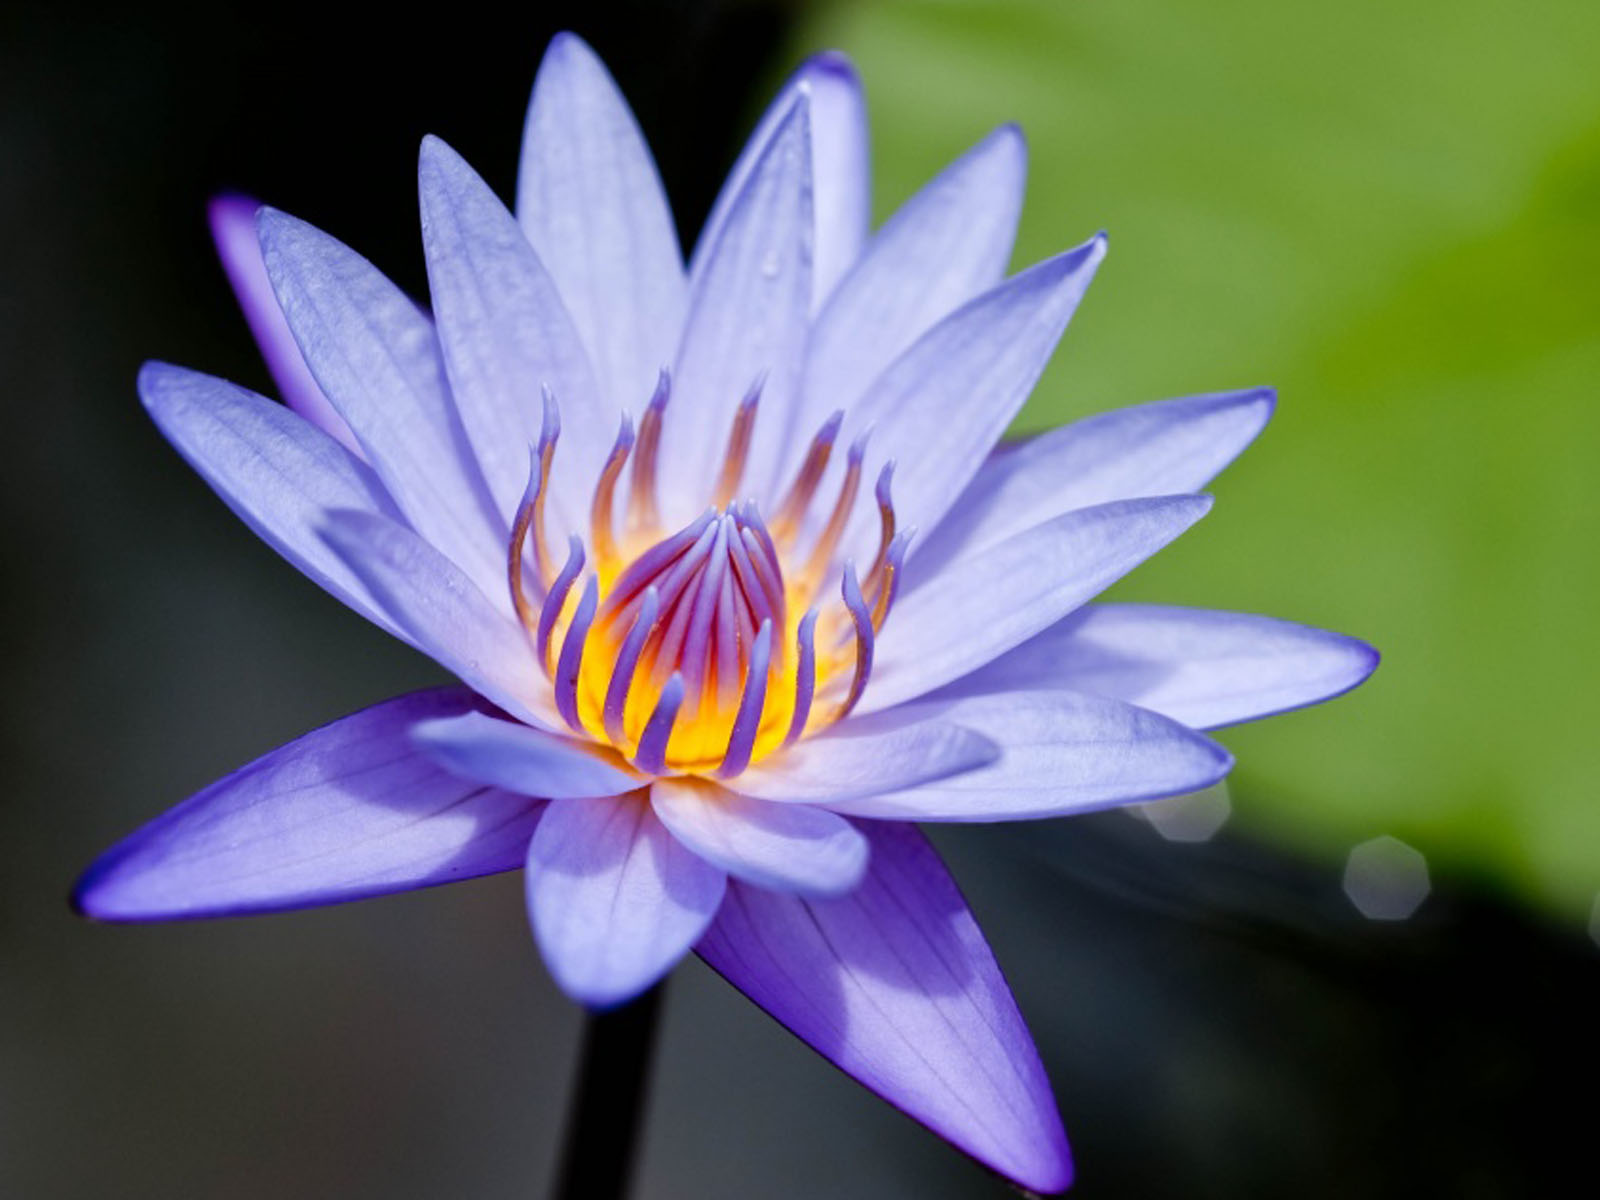 Water lily flowers wallpapers 1600x1200